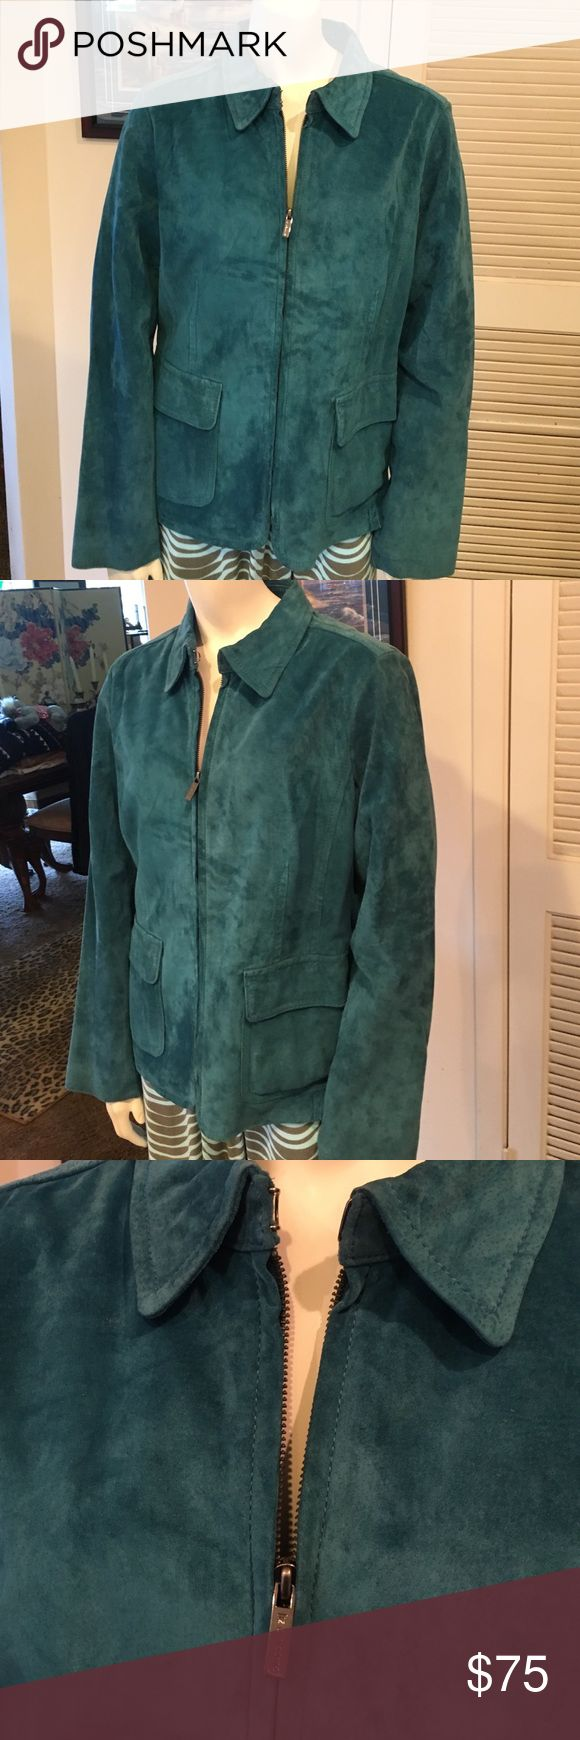 Liz Claiborne Turquoise Suede Jacket!! In great shape designer jacket perfect for fall Liz Claiborne Jackets & Coats Jean Jackets